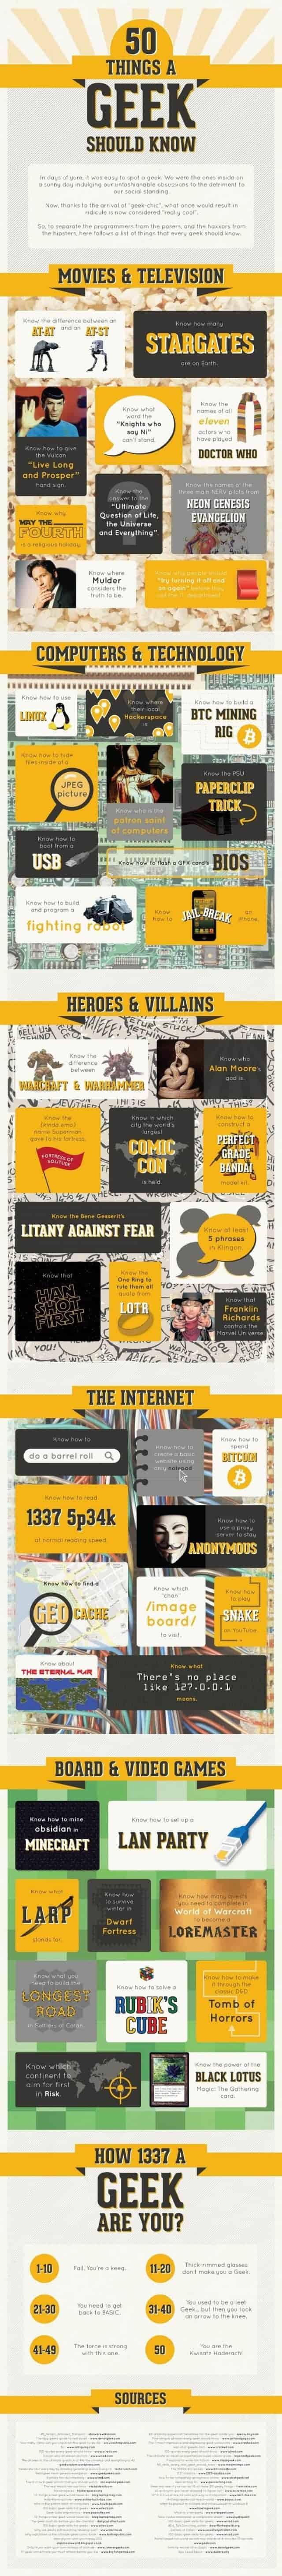 50-things-a-geek-should-know-infographic_5203bf8c5d075-640x5845